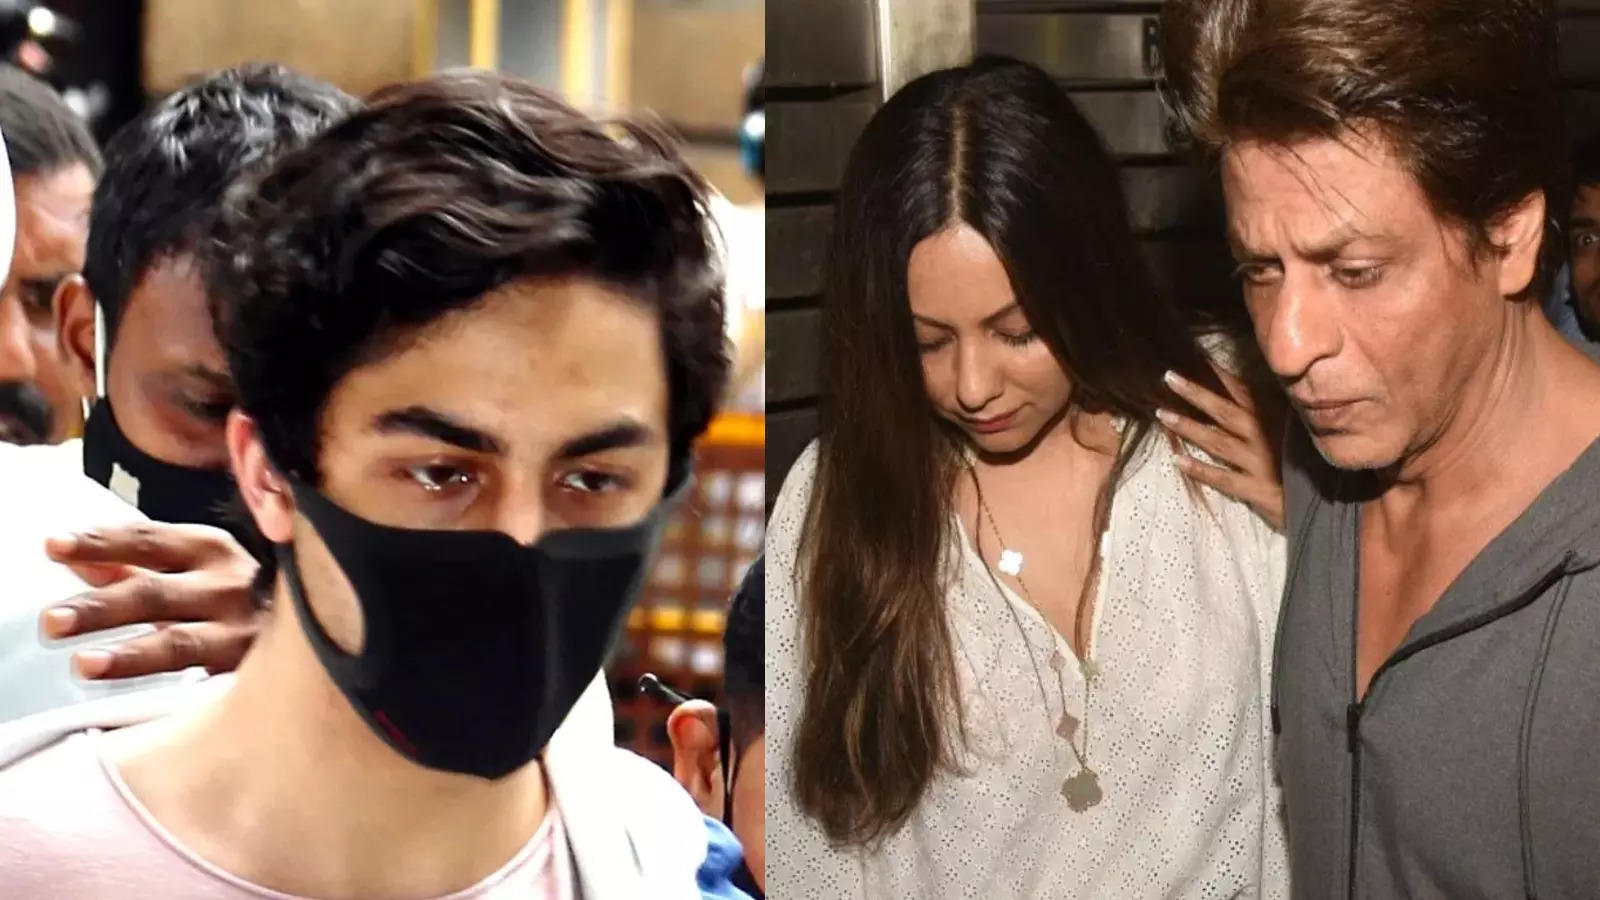 aryan-khan-breaks-down-in-tears-during-a-video-call-with-parents-shah-rukh-khan-and-gauri-khan-from-jail